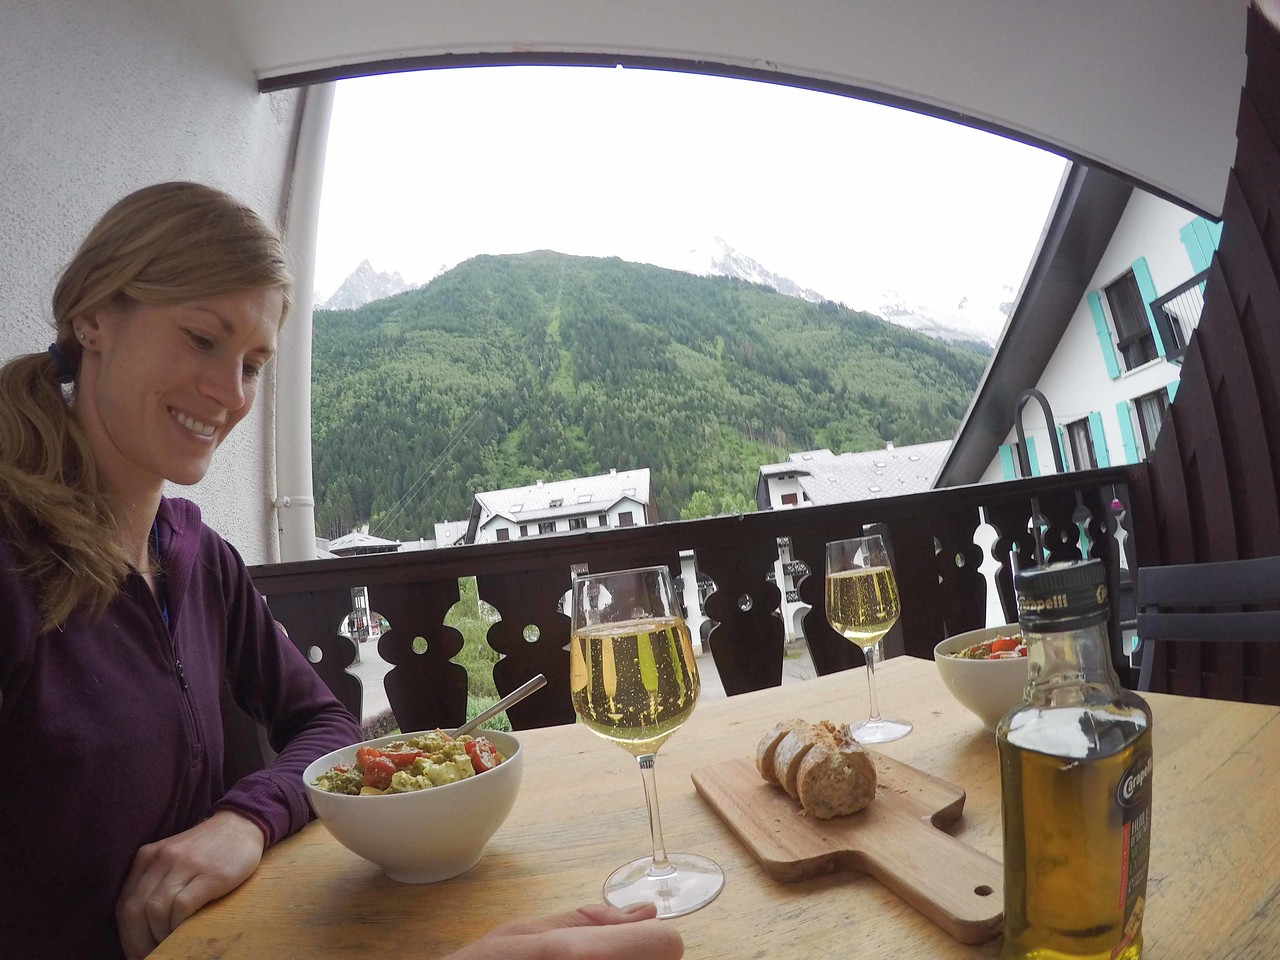 The apartment we got on Air BnB was amazing- a great view of the Aguille de Midi. That and cooking for ourselves was wonderful as well. <br /> <br /> DCIM\100GOPRO\GOPR6052., hlbD_abc72578.jpg